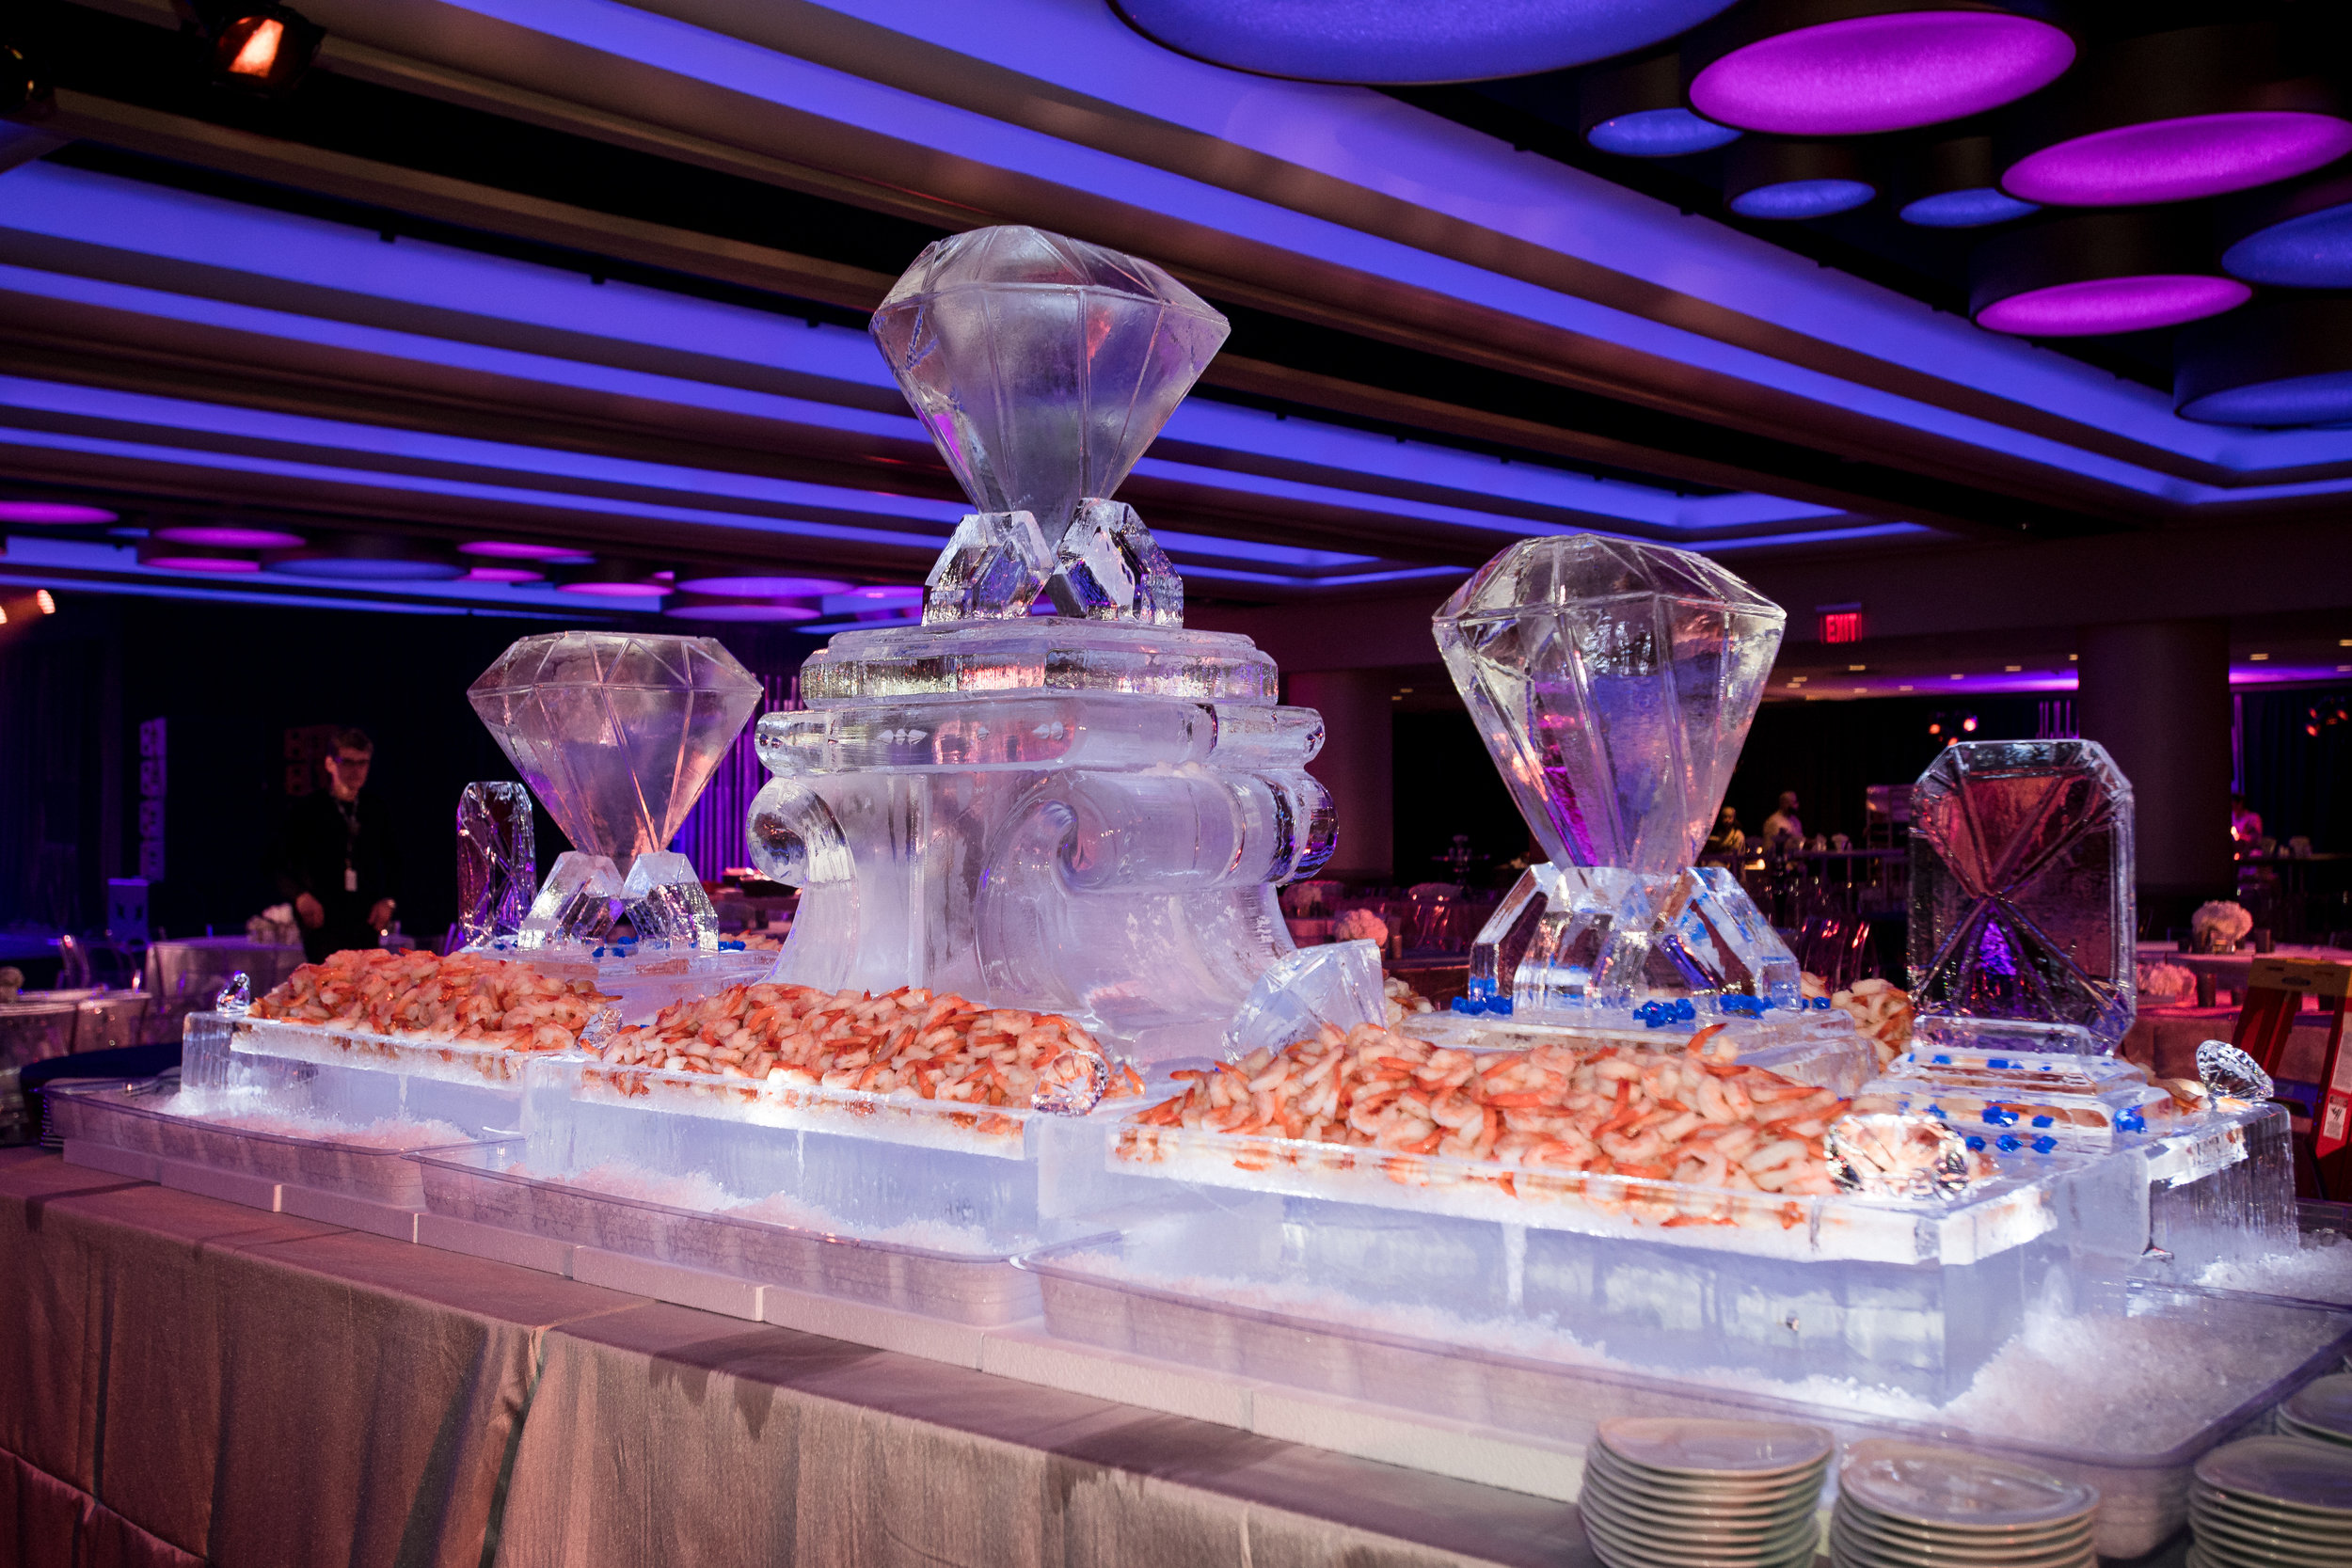 Grammy-60_2018-New York-Ice Sculpture-Diamond-Shrimp-Cocktail.jpg